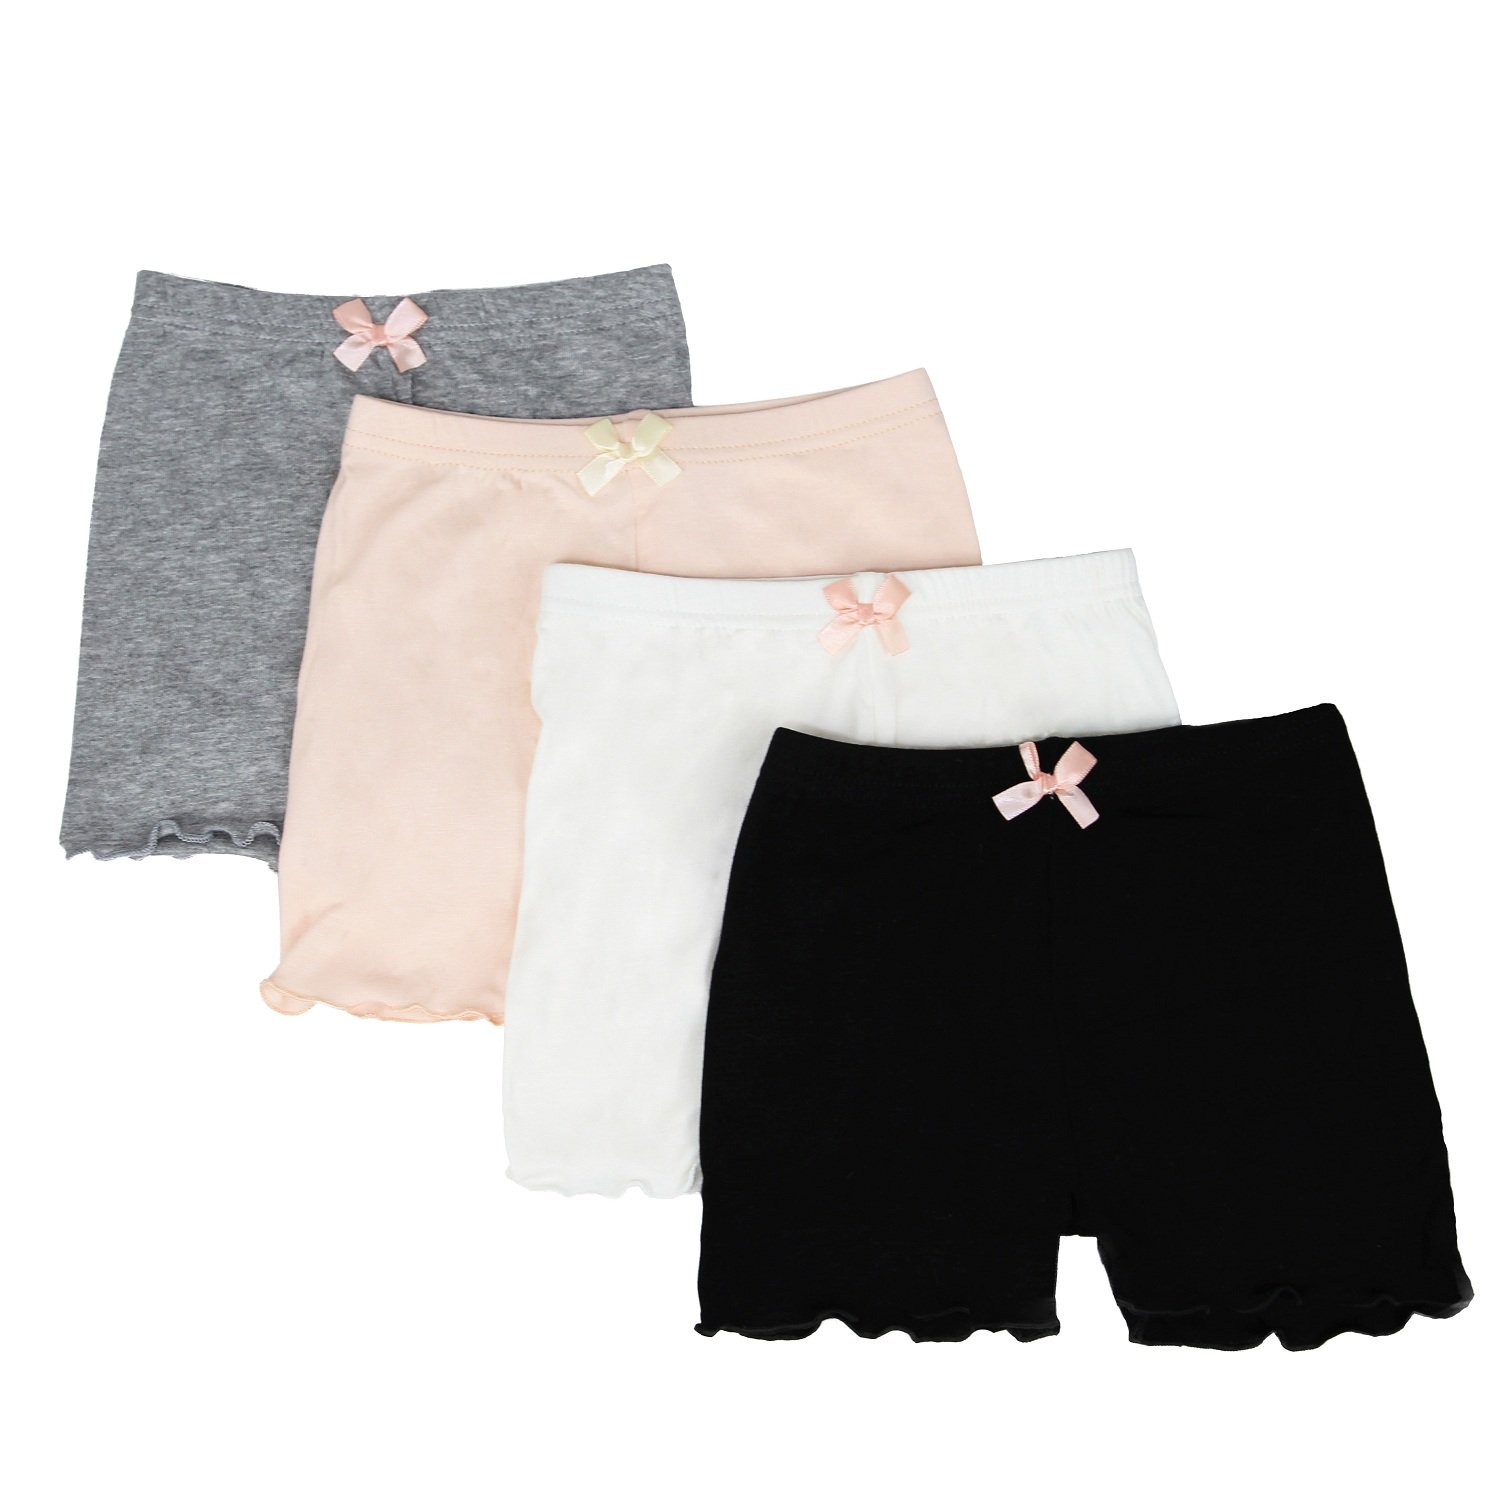 FreeNFond Dance Shorts Girls Bike Short for Gymnastics Under Skirt